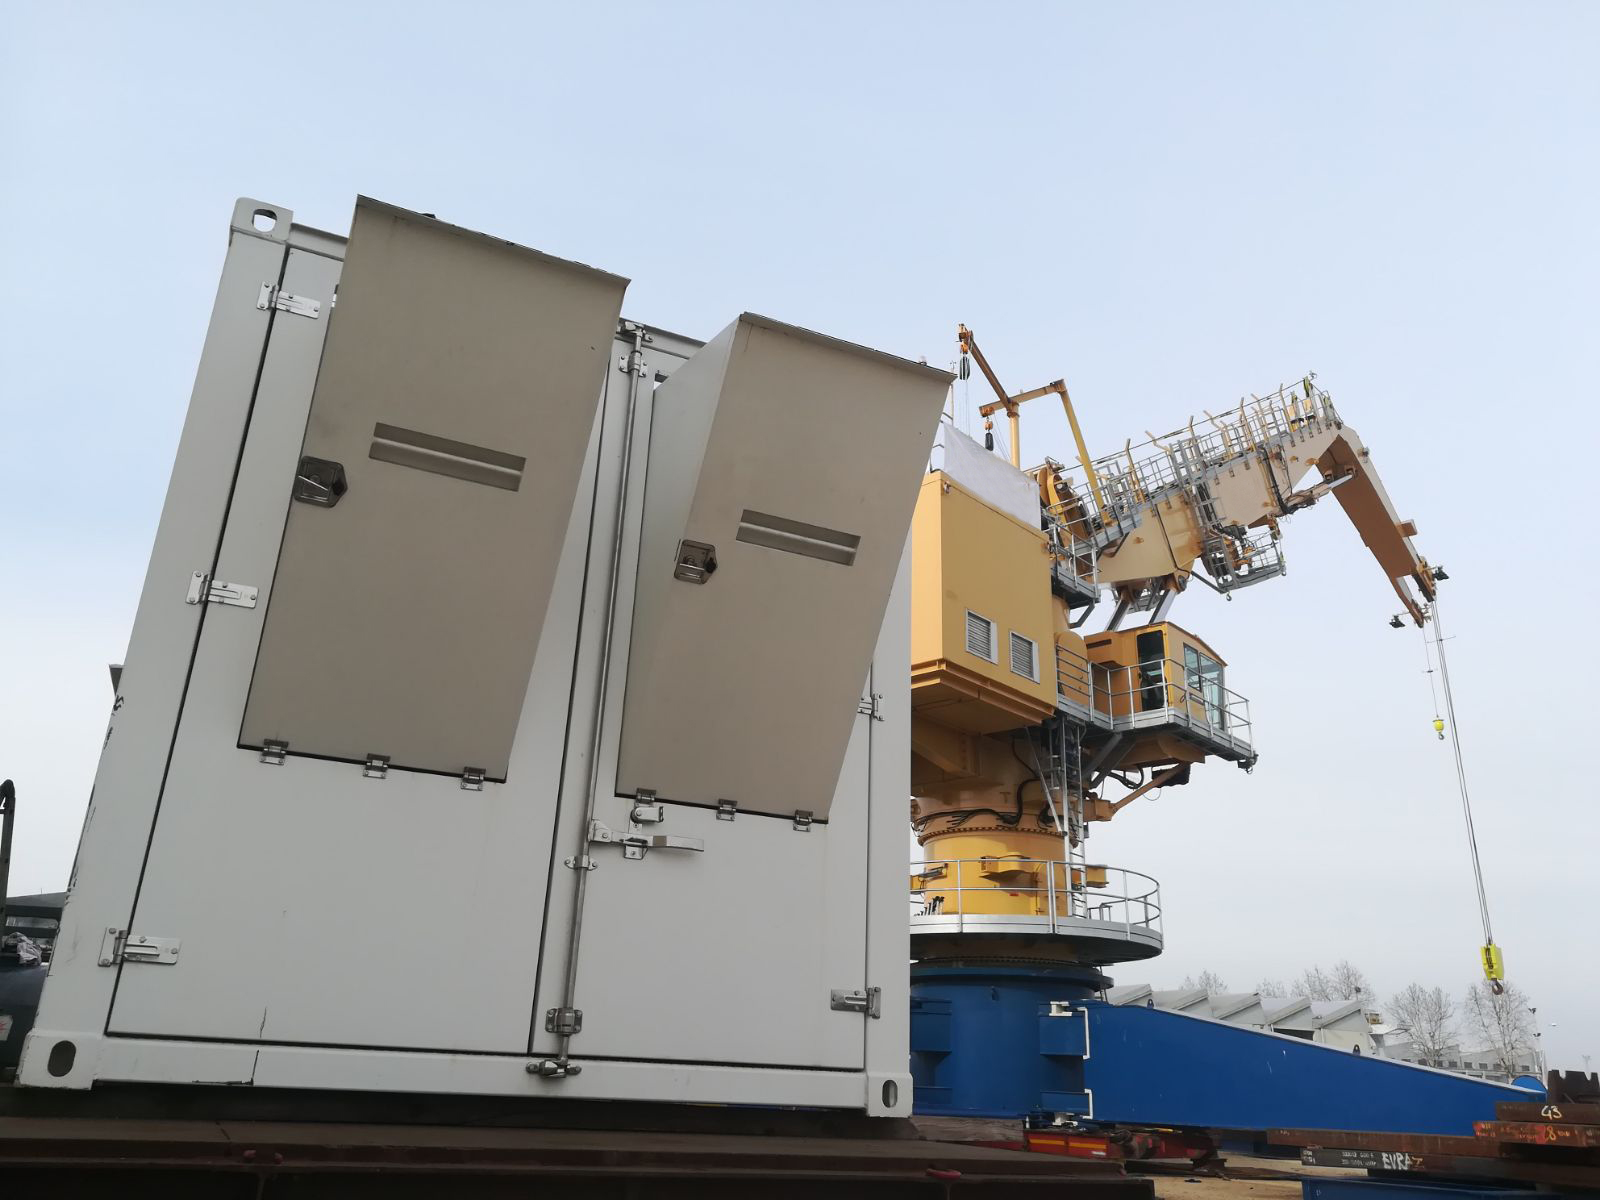 PERINGENERATORS: 1 5 Mw power generator for huge special